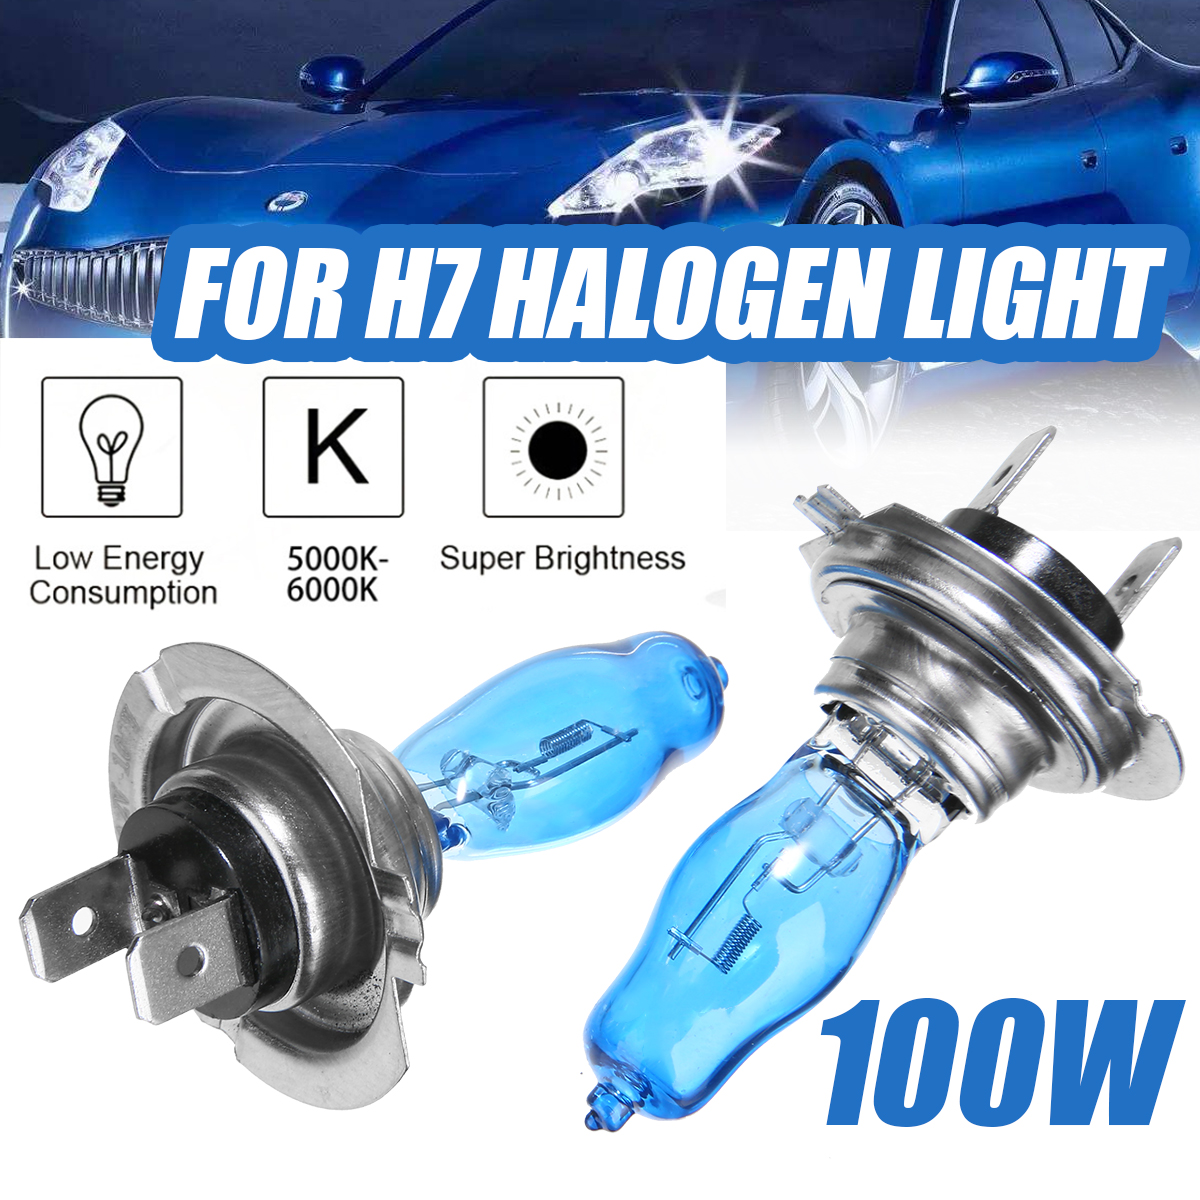 2pcs 12V <font><b>100W</b></font> H7 Halogen Lamp Super White With Xenon Gas Car <font><b>HeadLight</b></font> Auto Replacement Bulb image